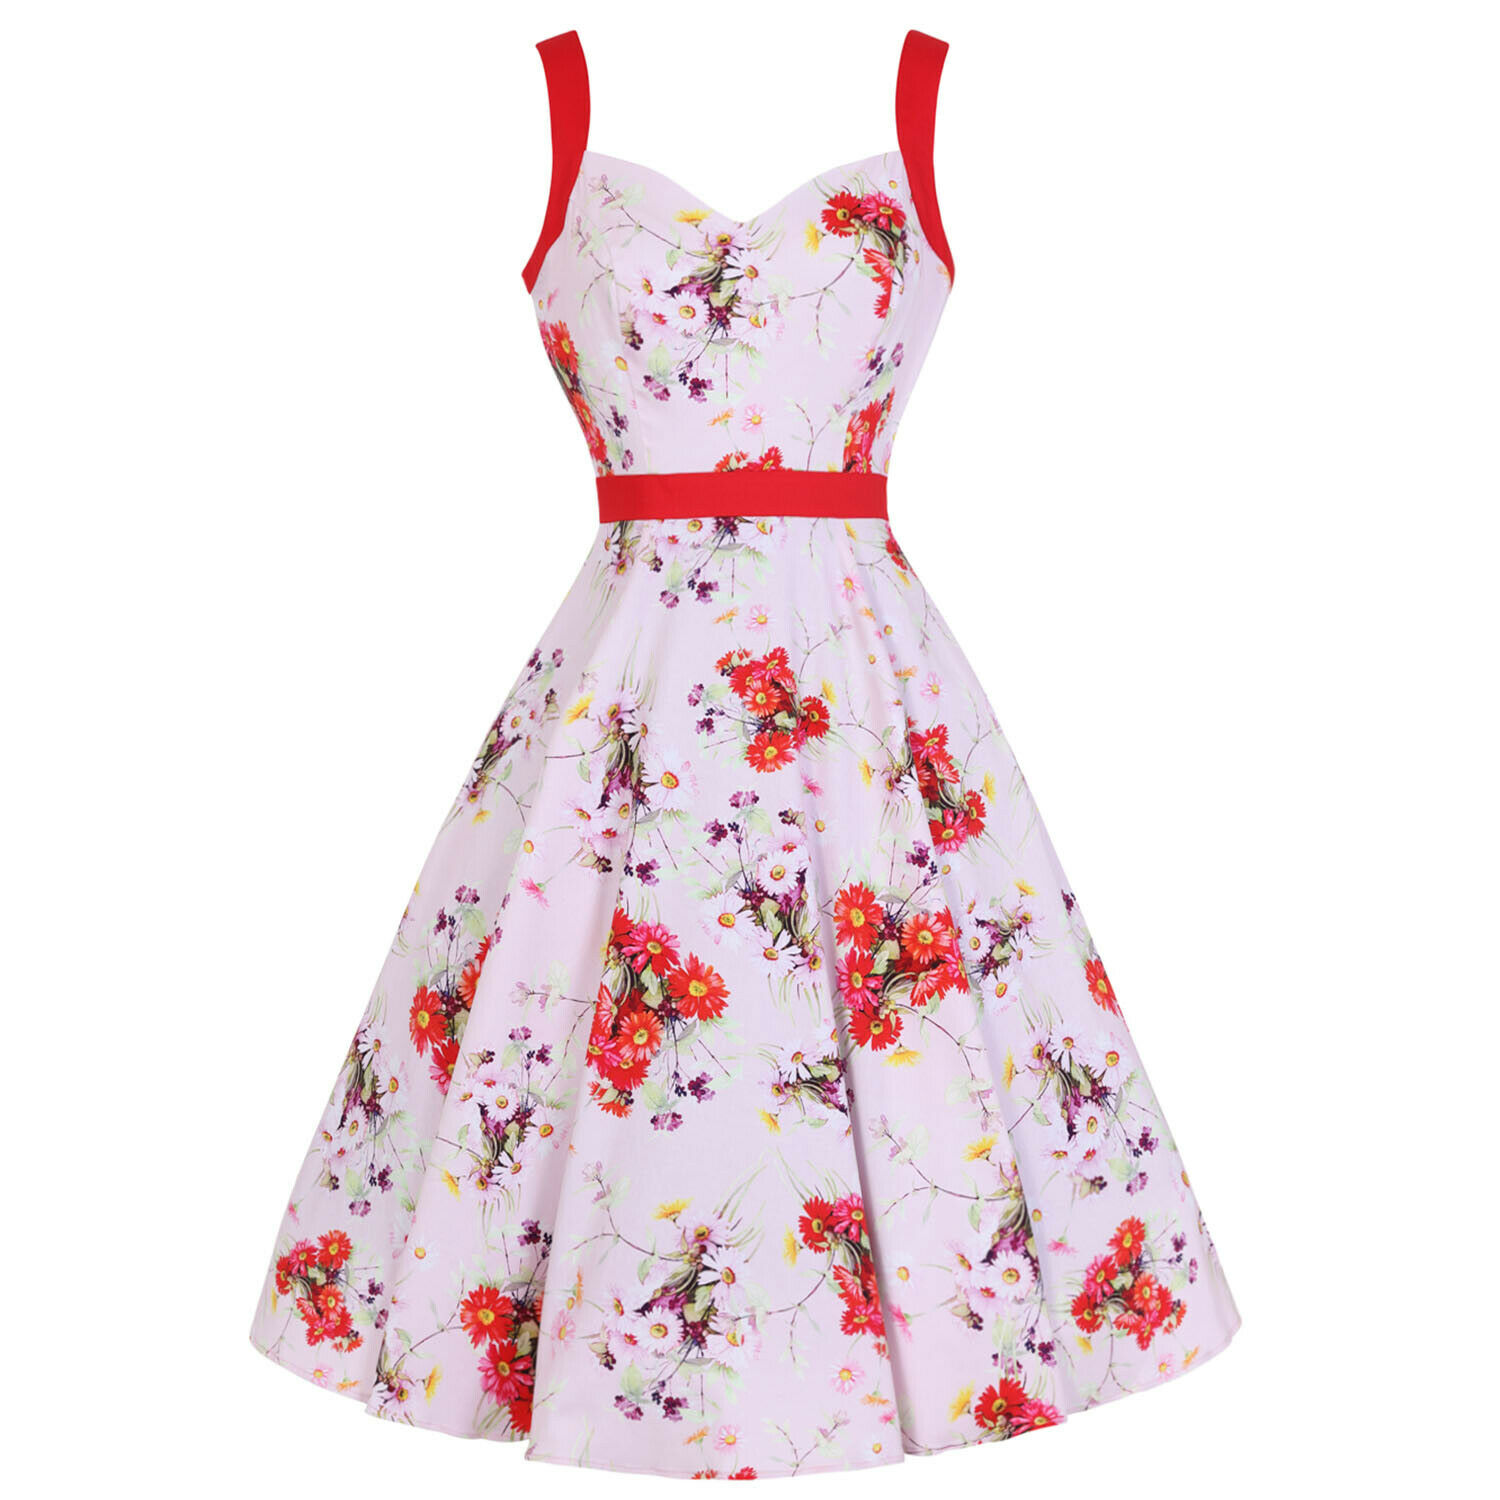 Hearts And Rosas London Neu Rosa Rot Blaumenmuster Daisy 1950er Jahre